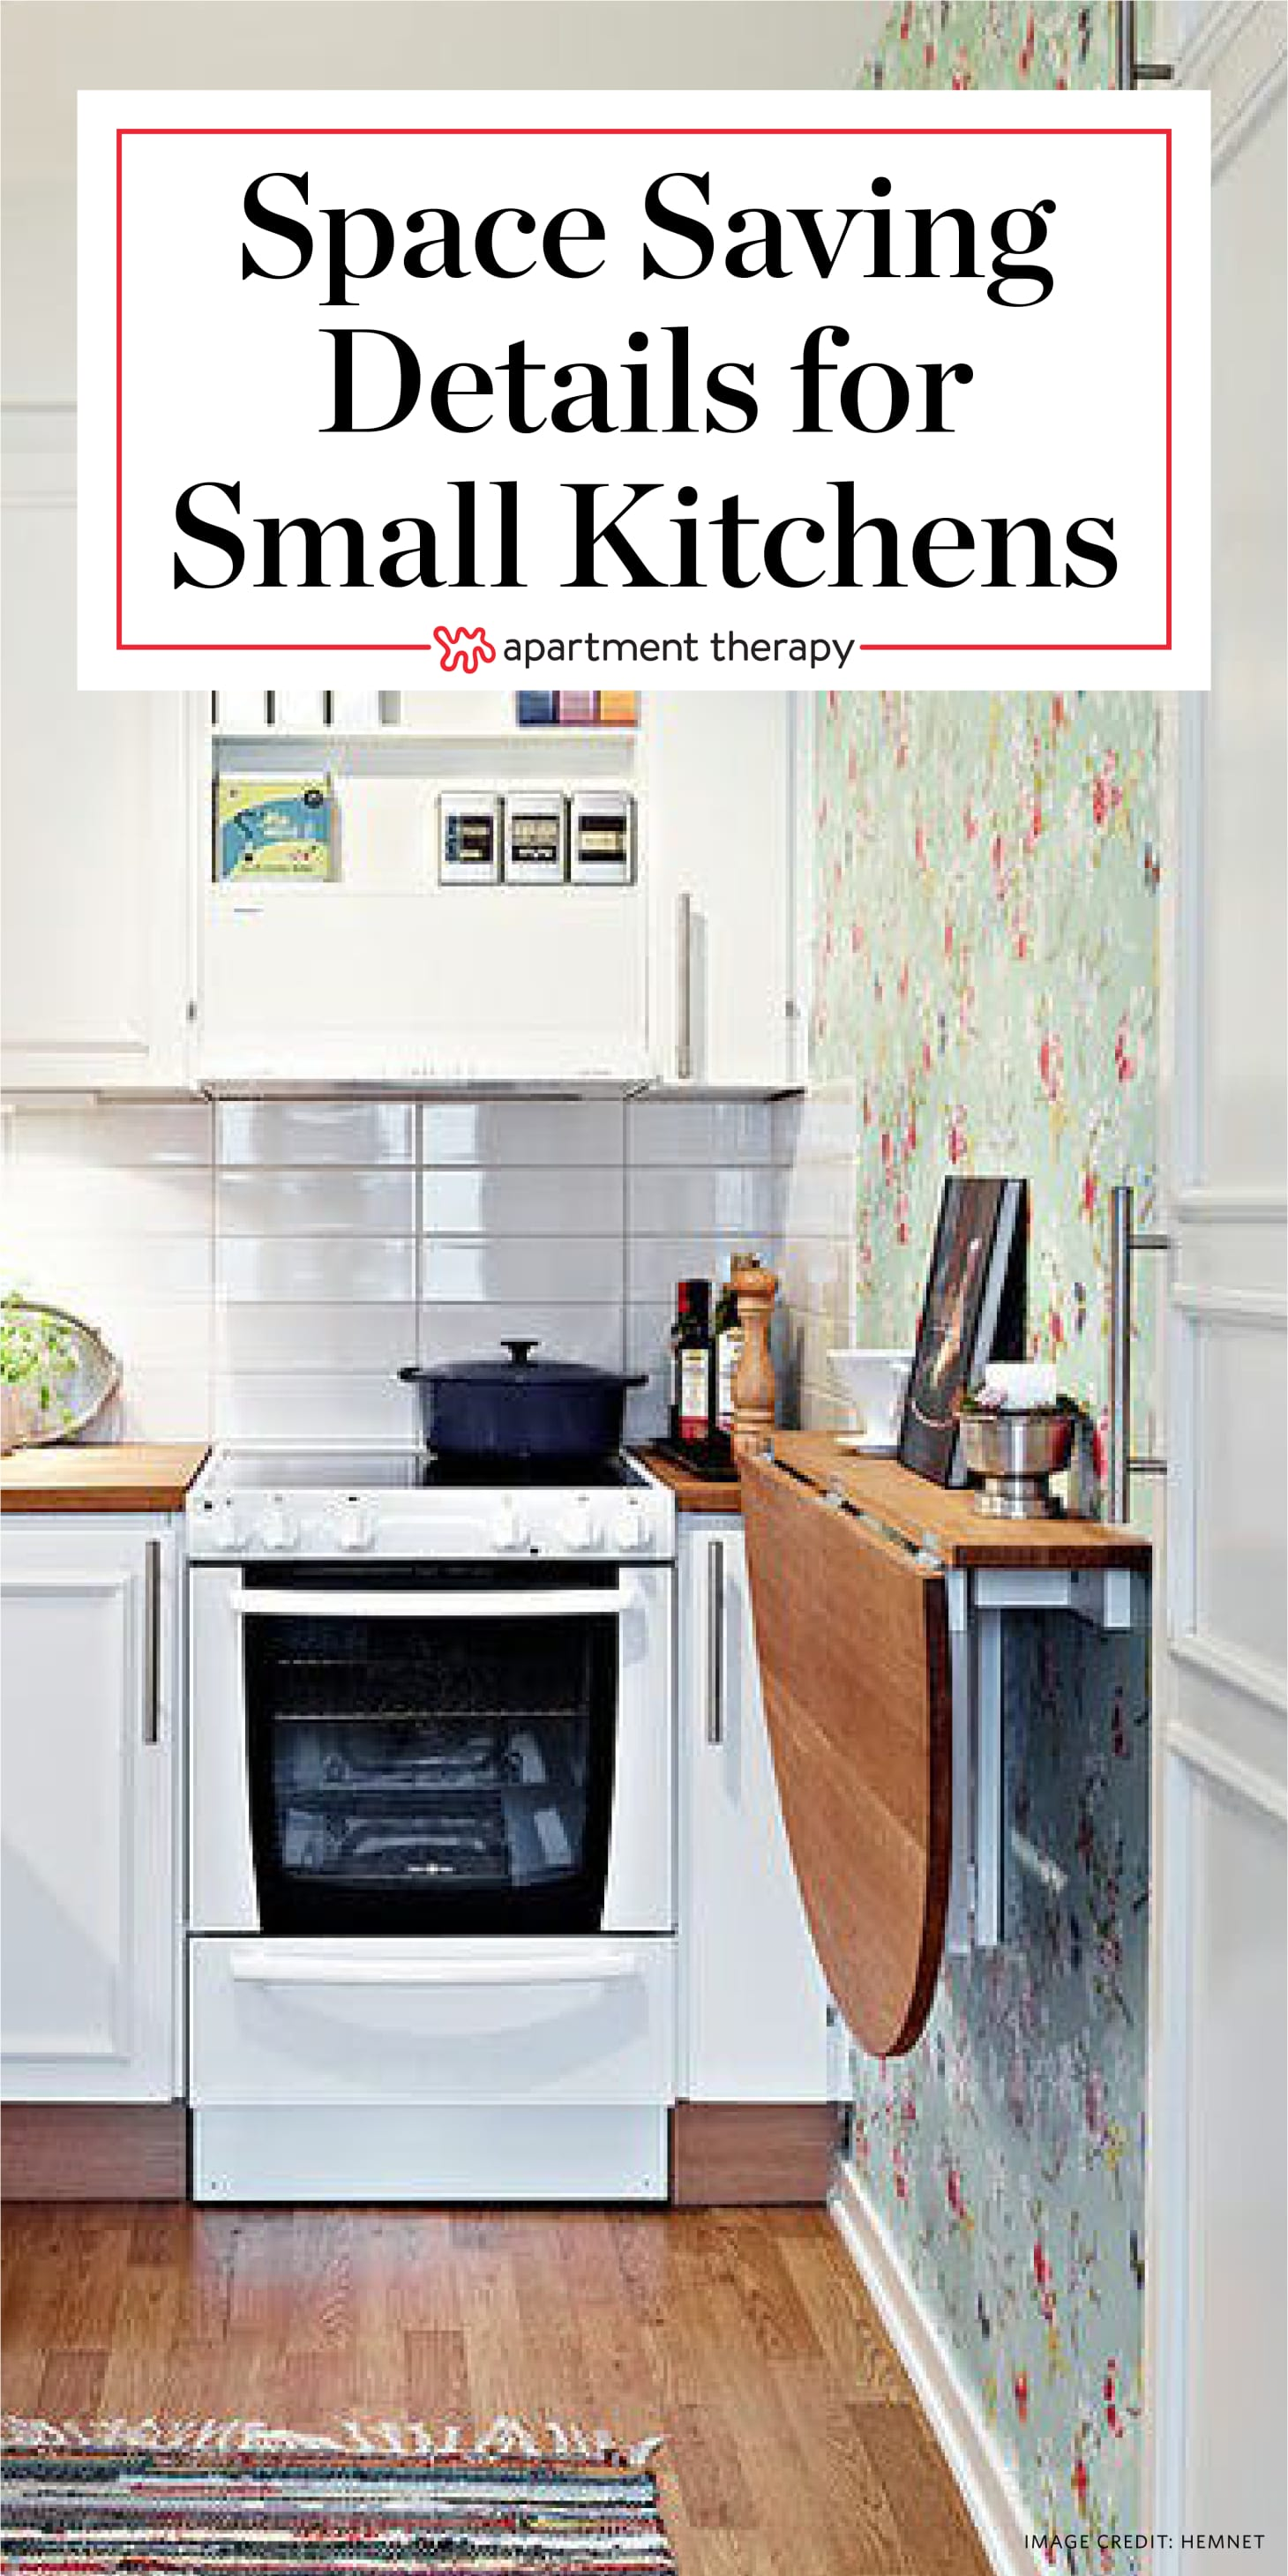 Genius Kitchens: Space Saving Details for Small Kitchens | Apartment ...